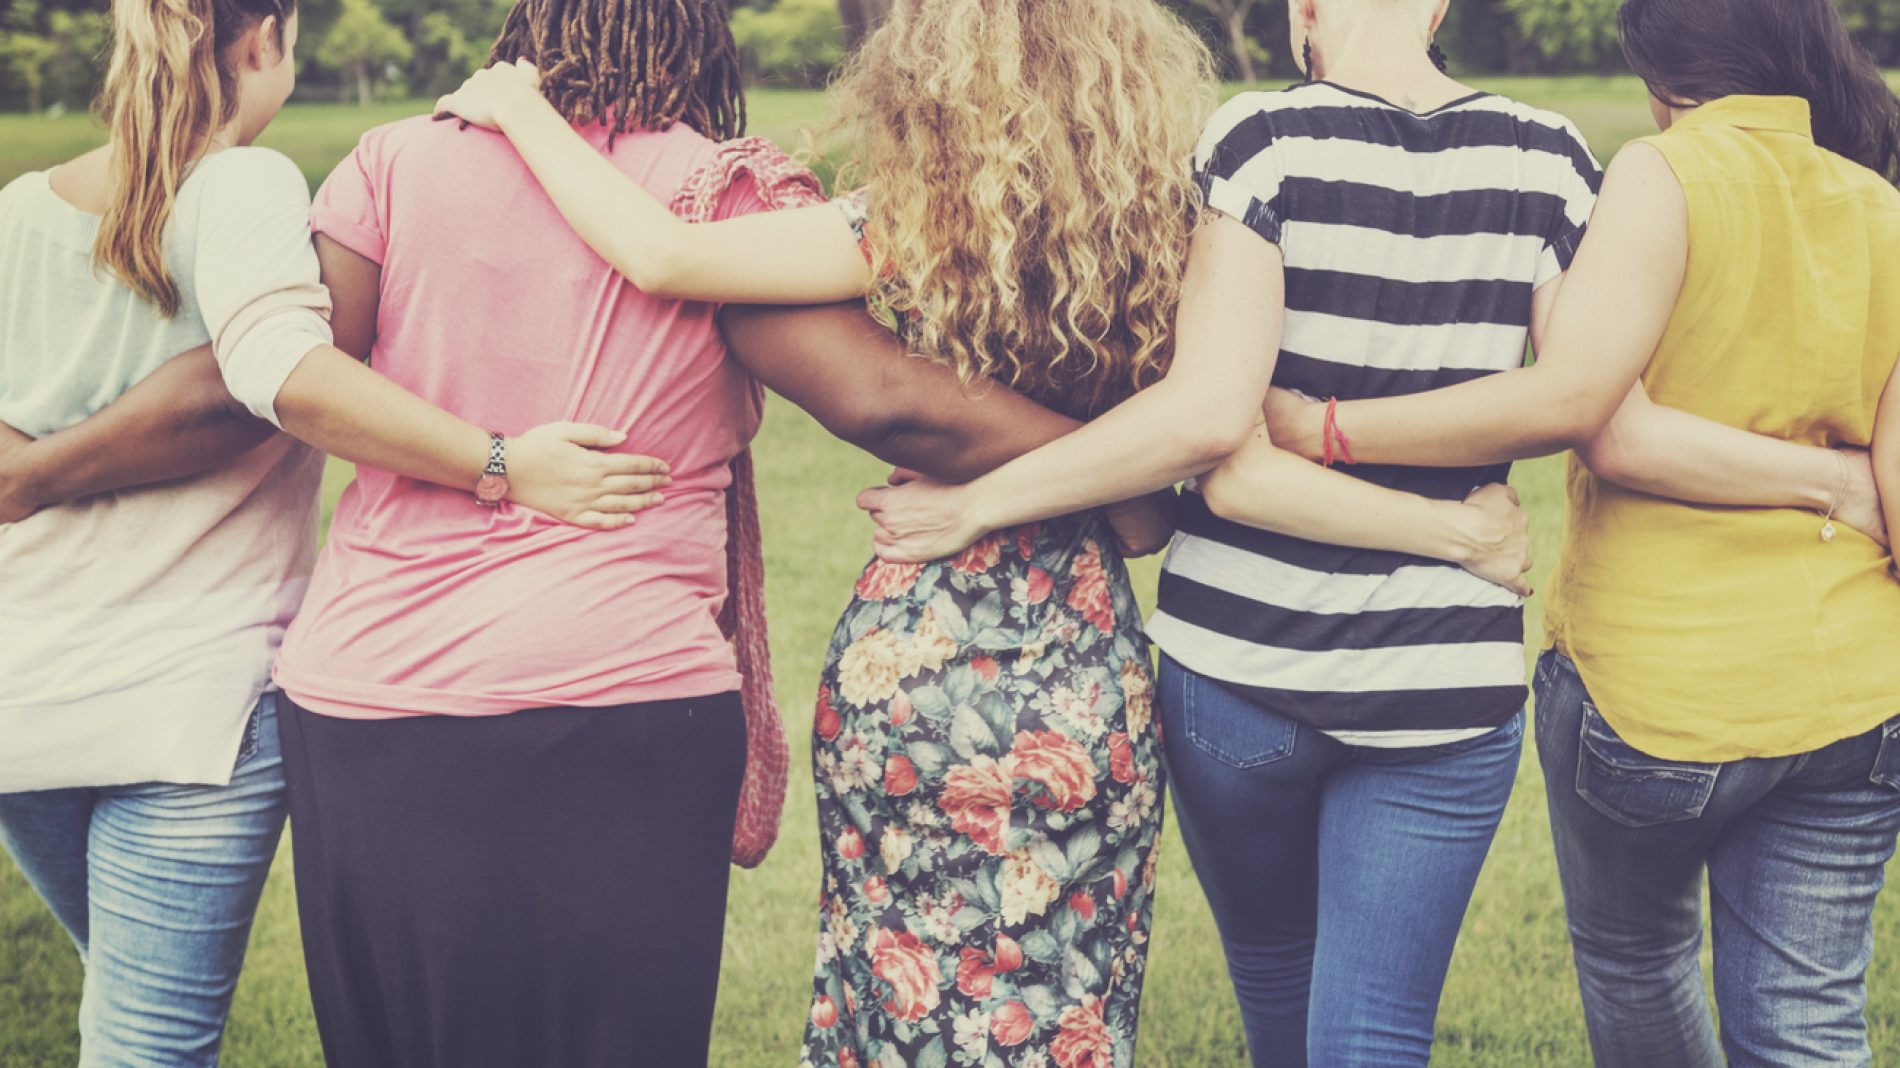 5 women linking each other